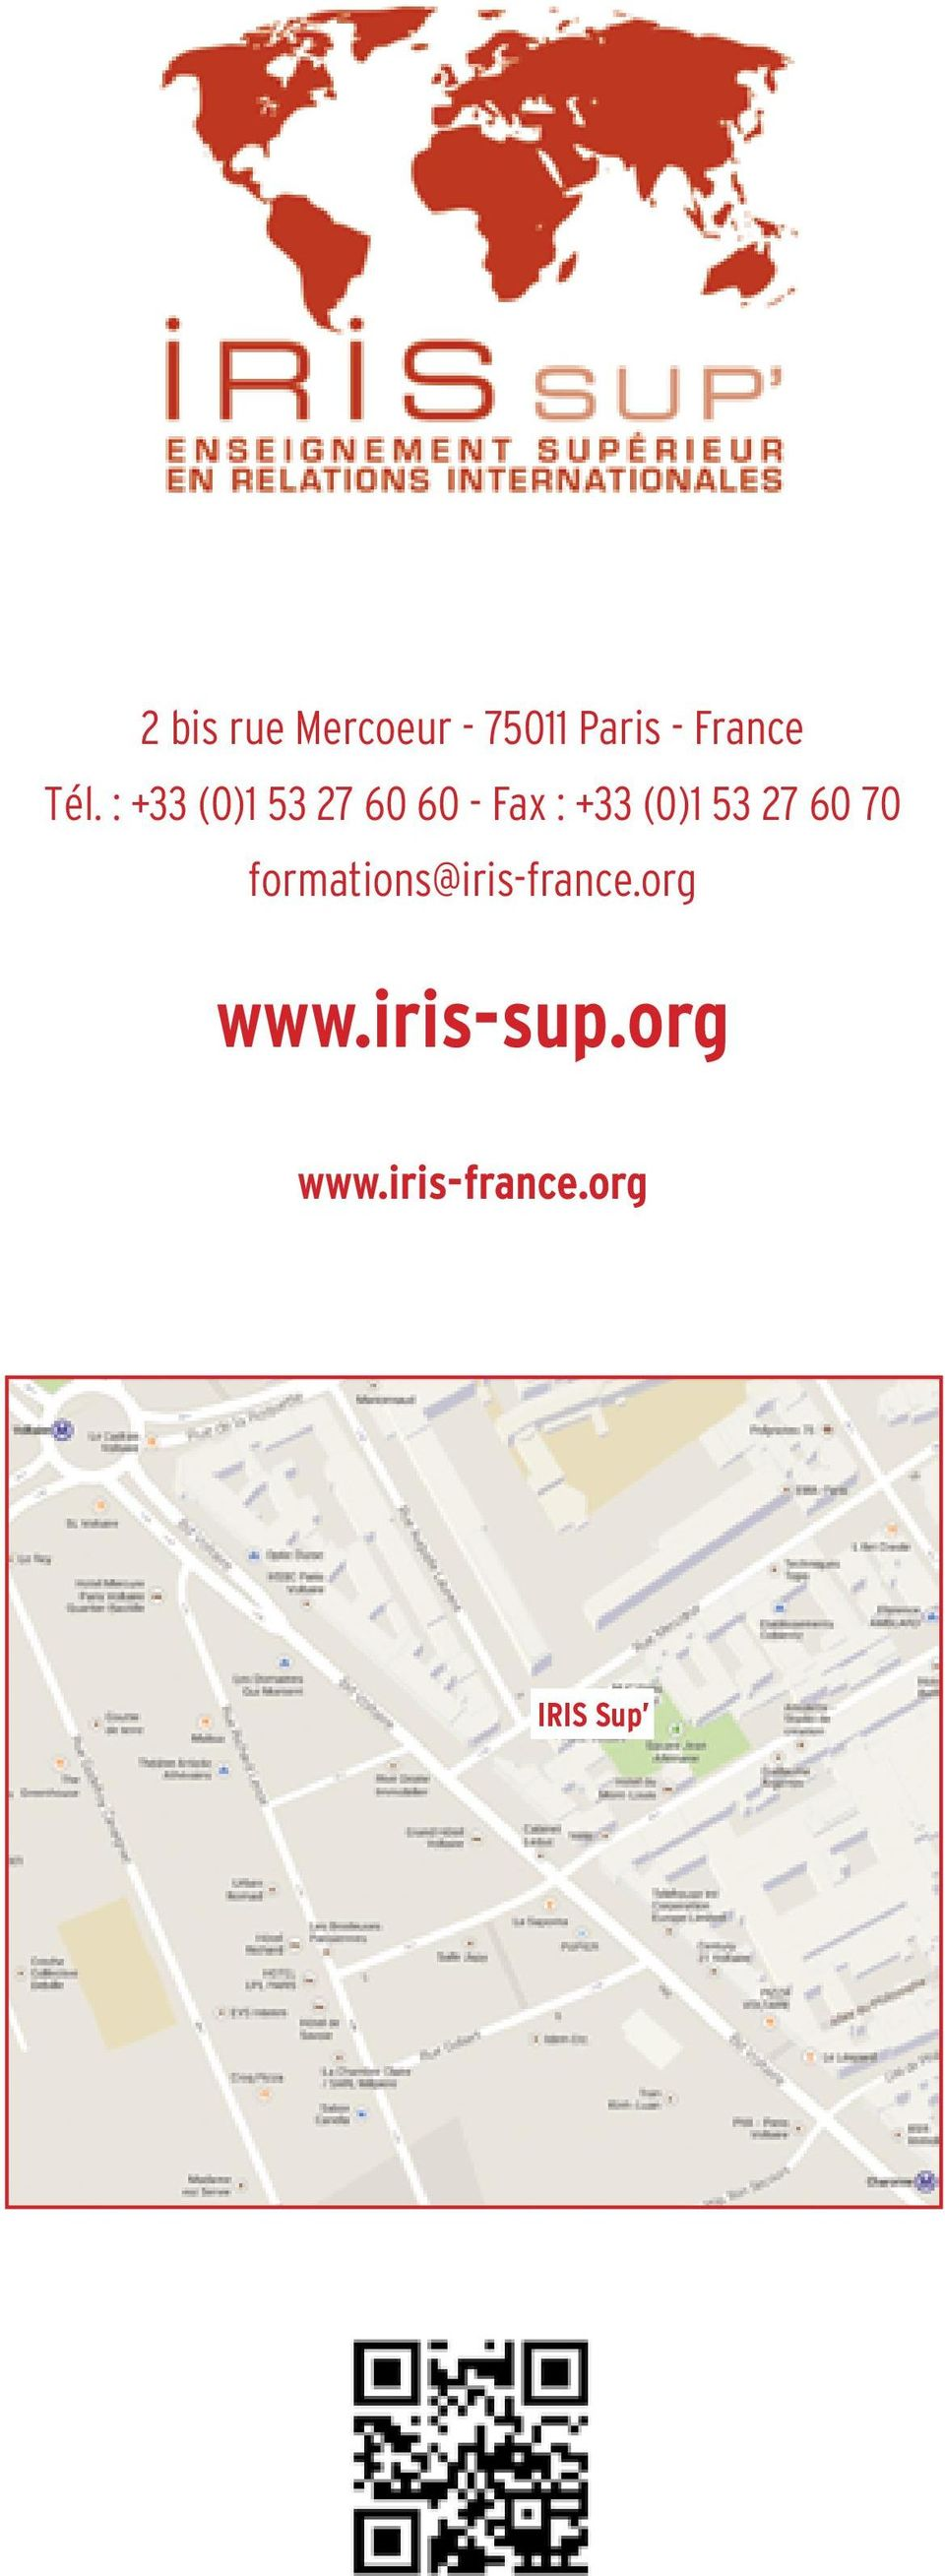 (0)1 53 27 60 70 formations@iris-france.